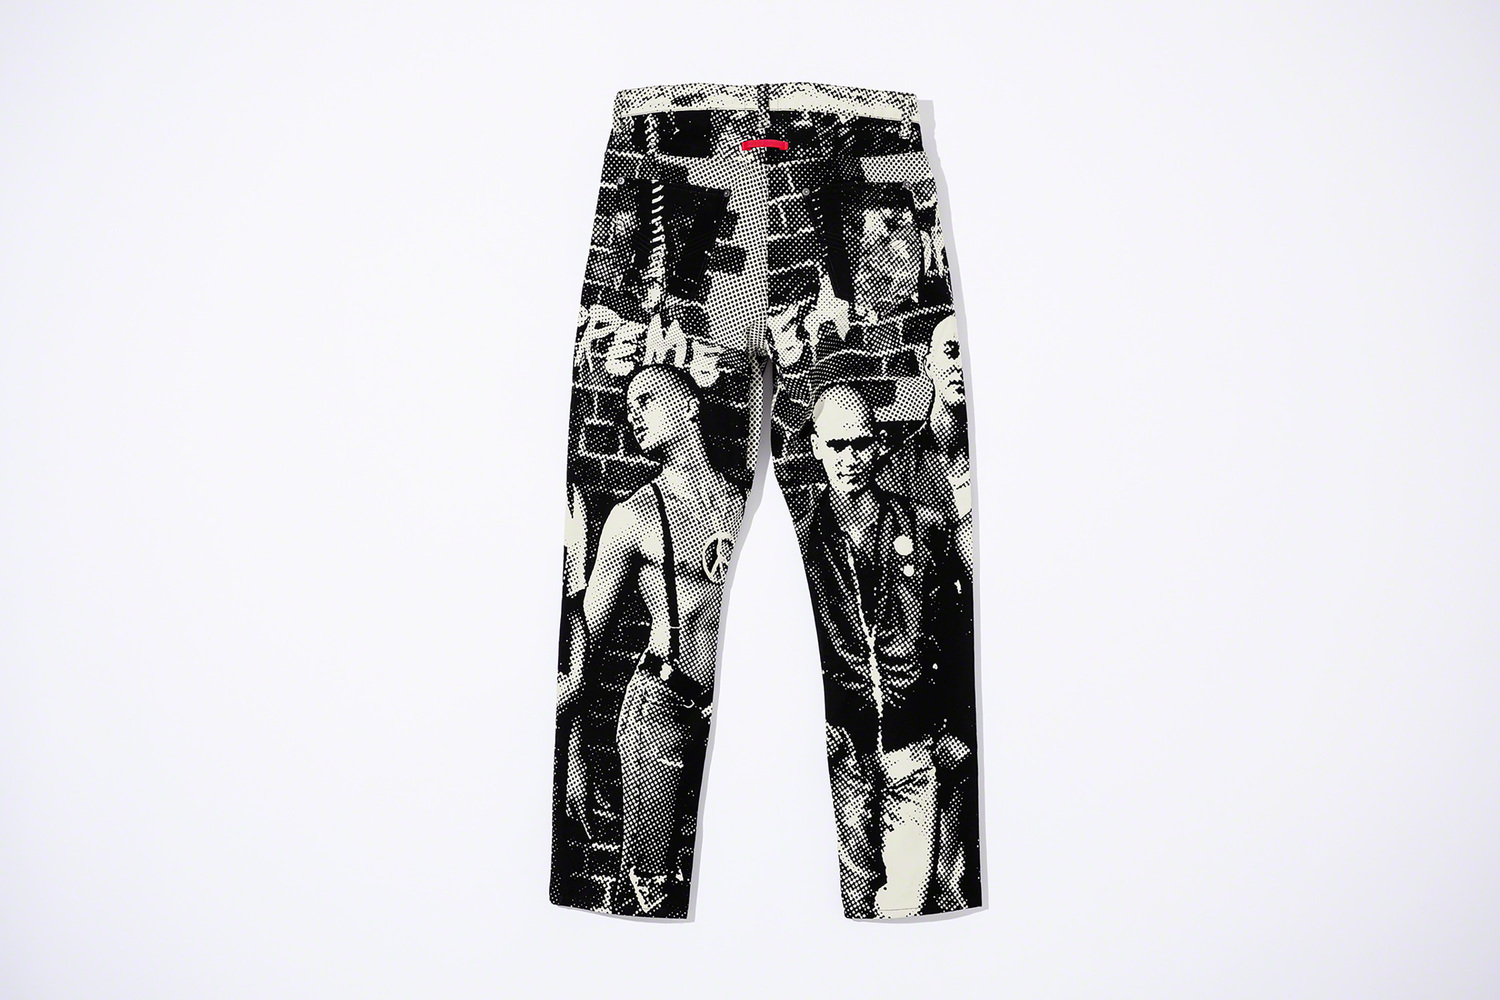 supreme-jean-paul-gaultier-19ss-collaboration-release-20190413-week7